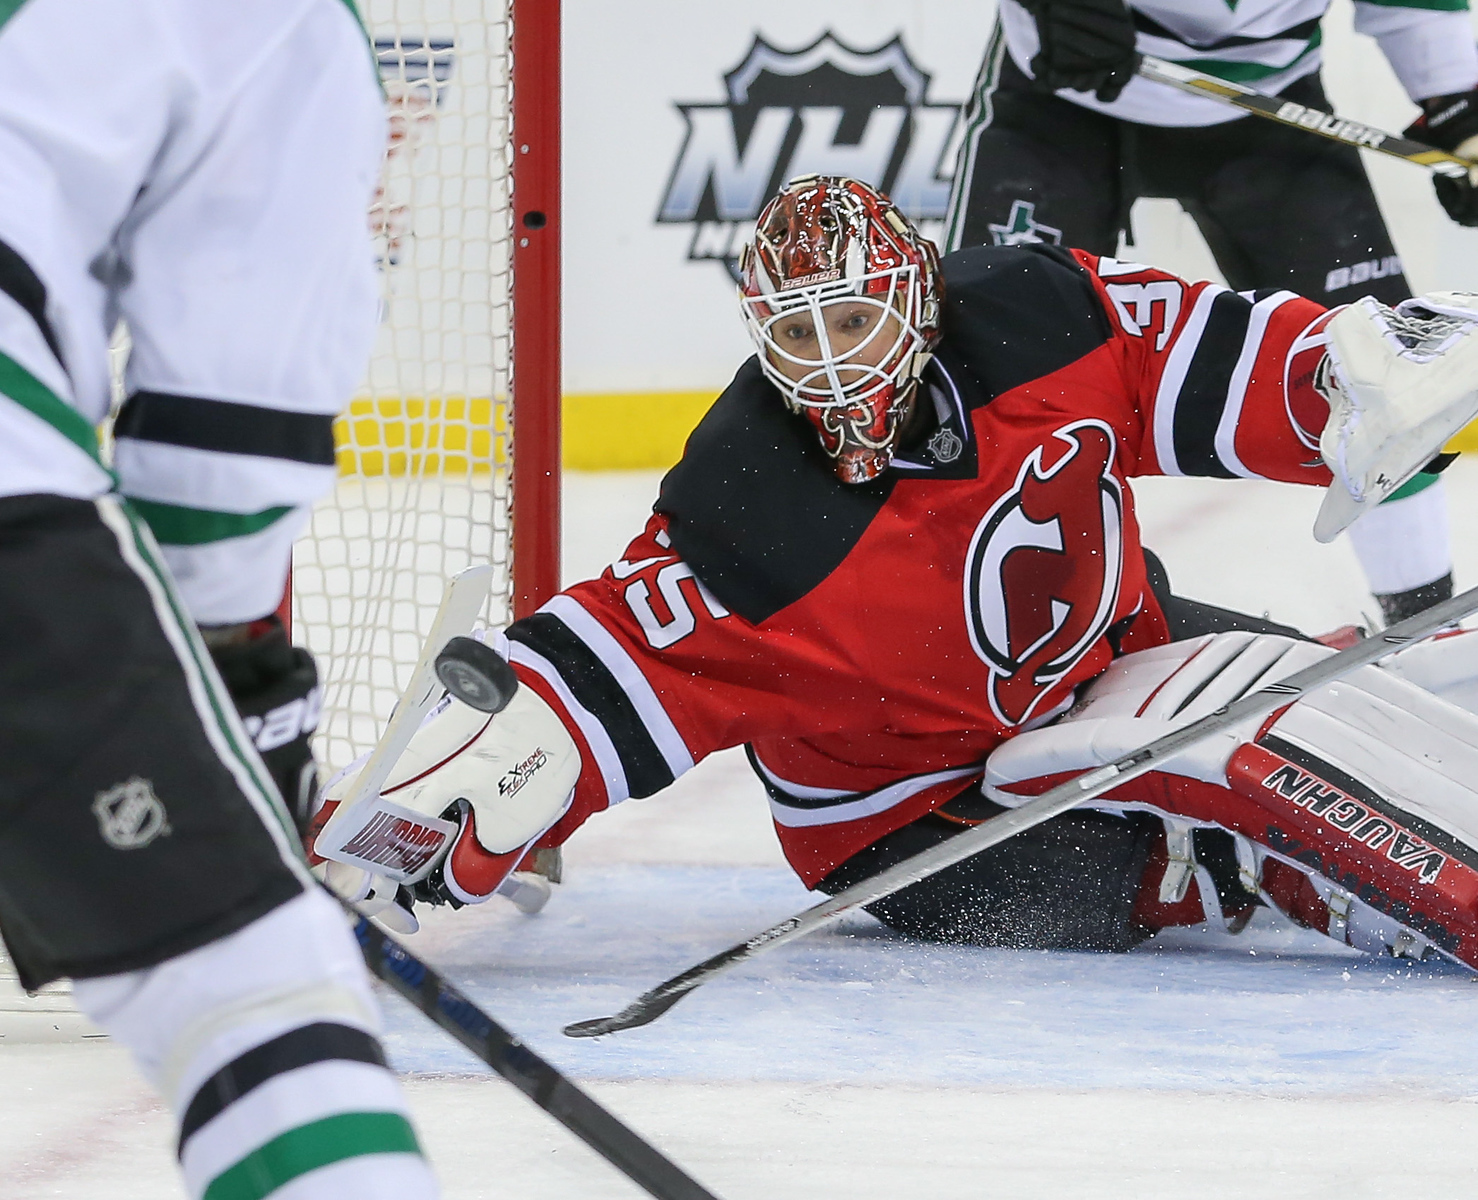 NHL Hockey 2016: Stars vs Devils JAN 2